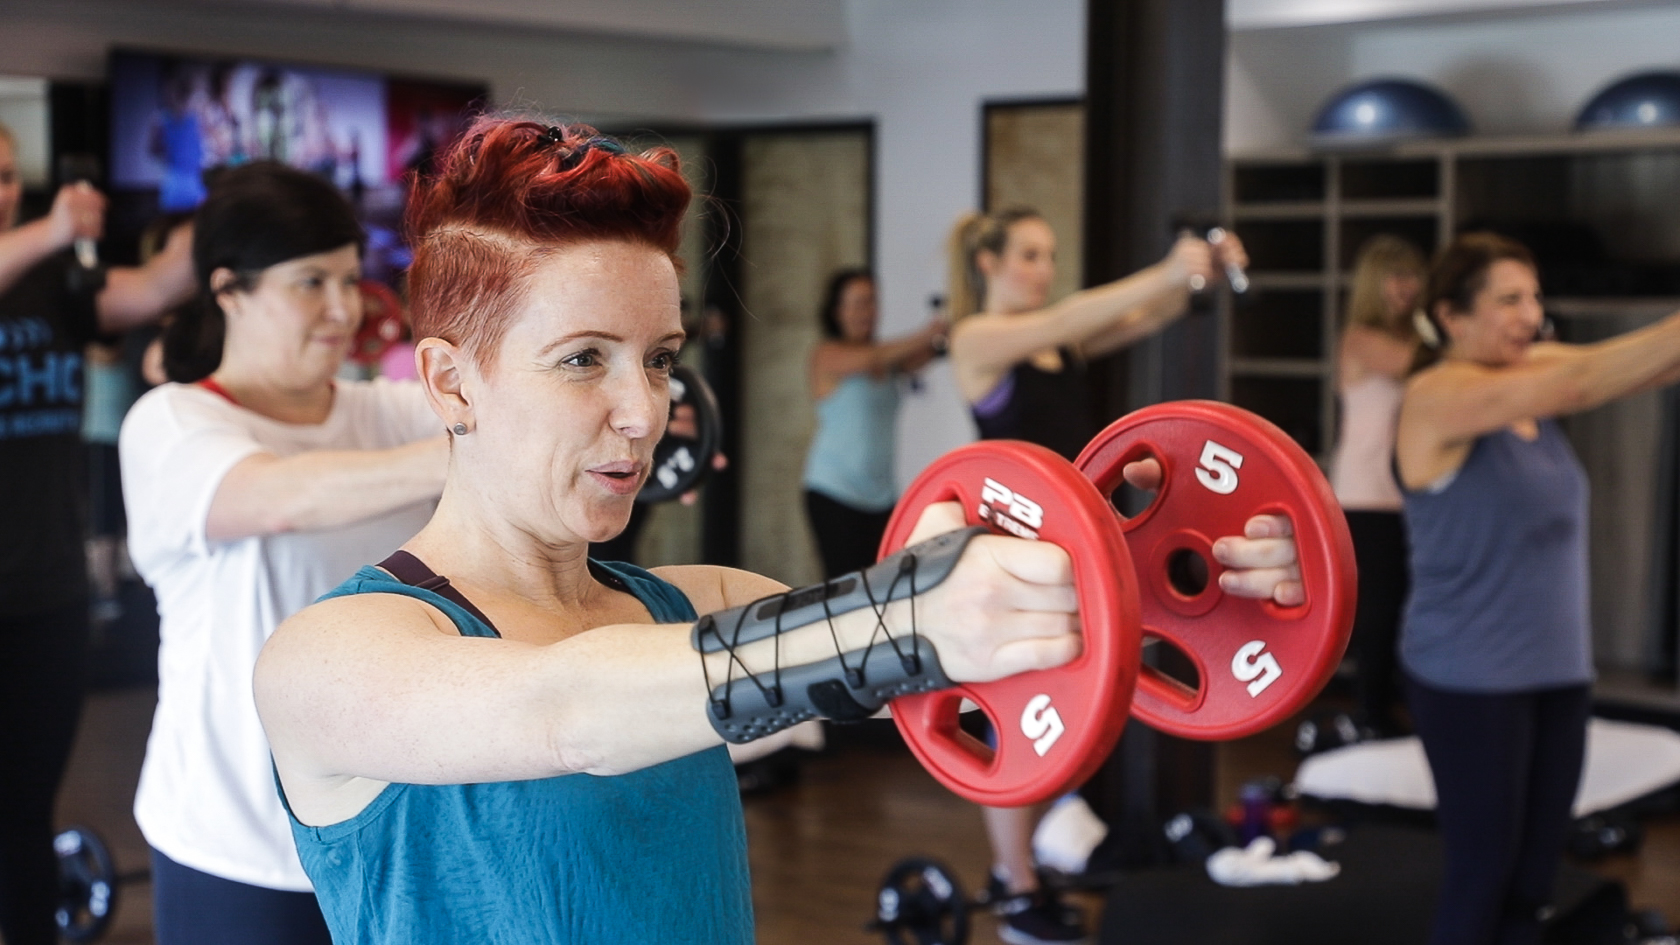 HIIT and Strength woman exercising